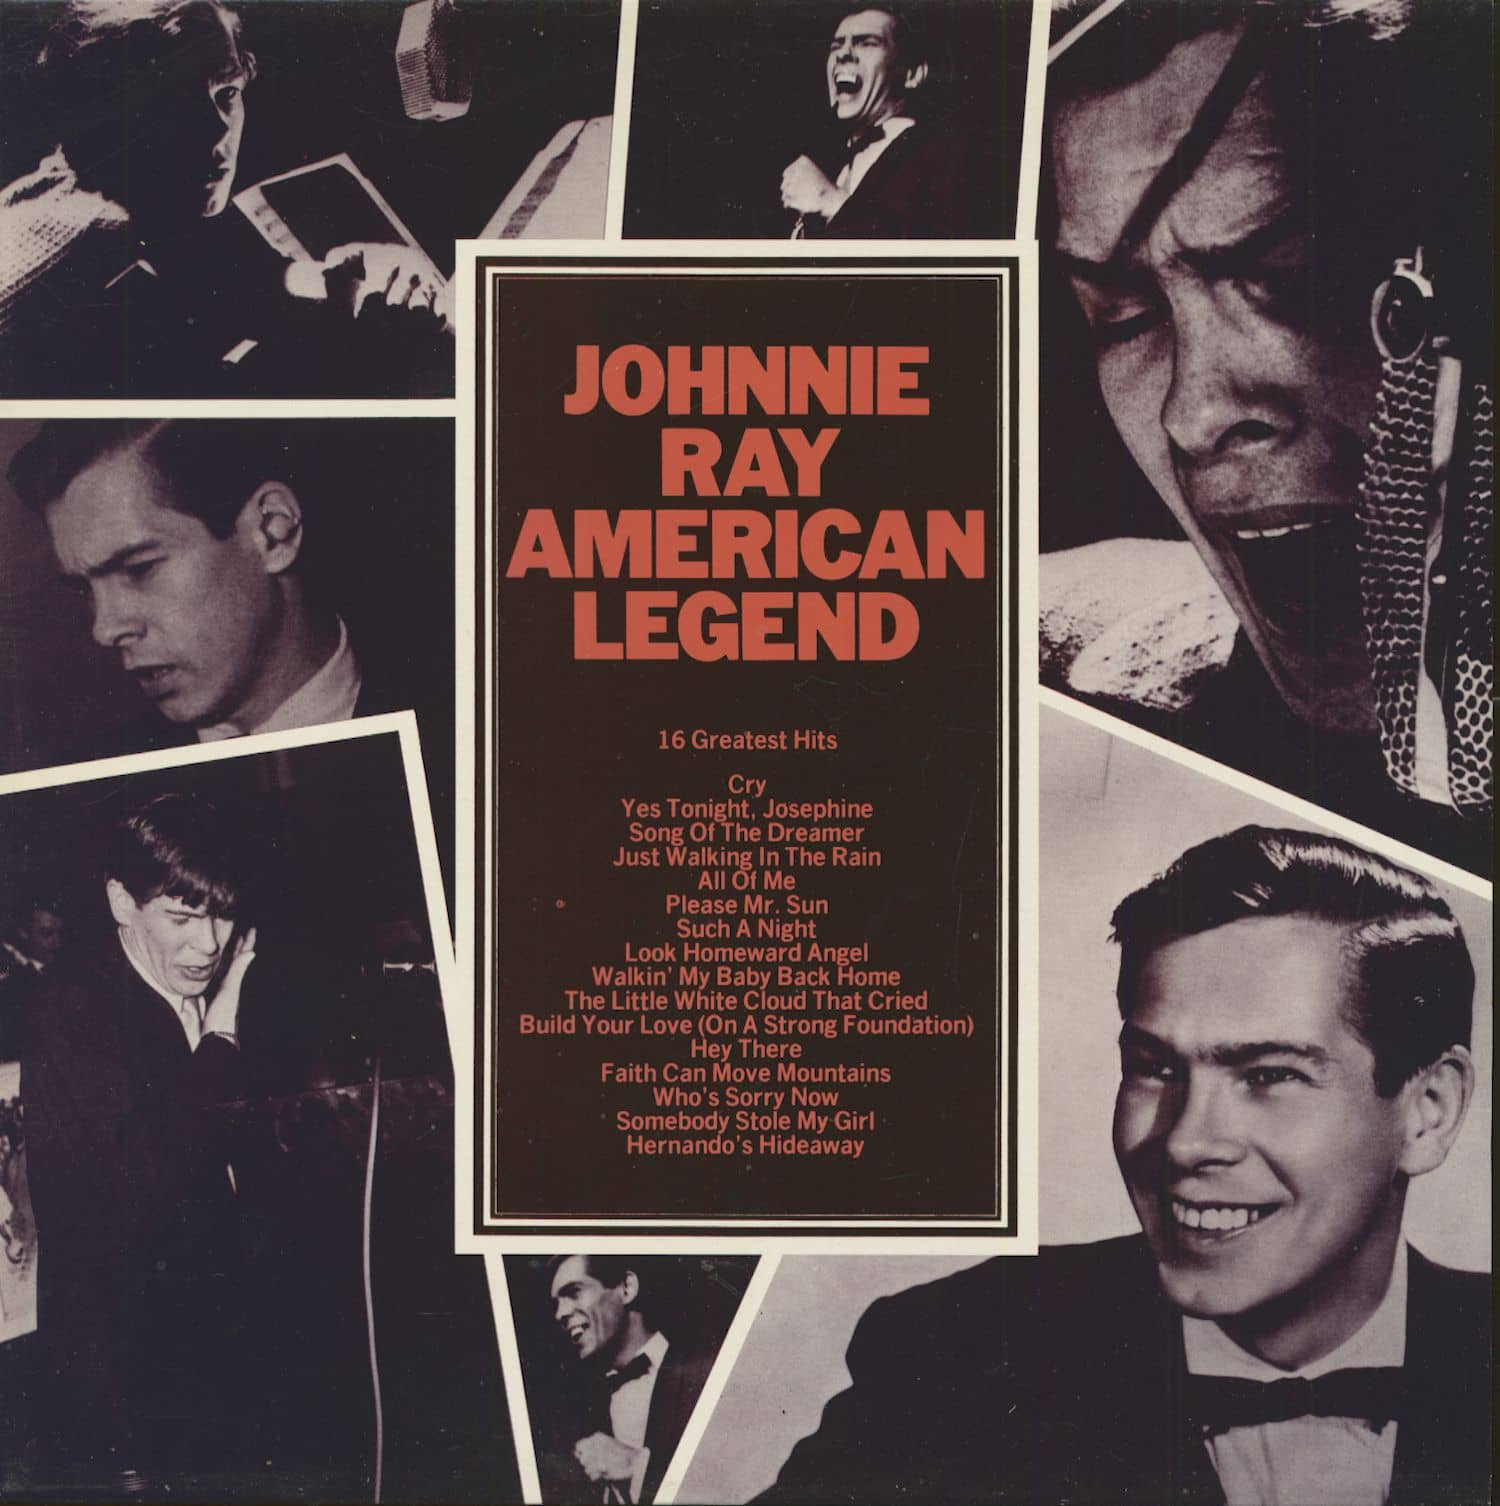 Johnnie Ray Lp American Legend 16 Greatest Hits Lp